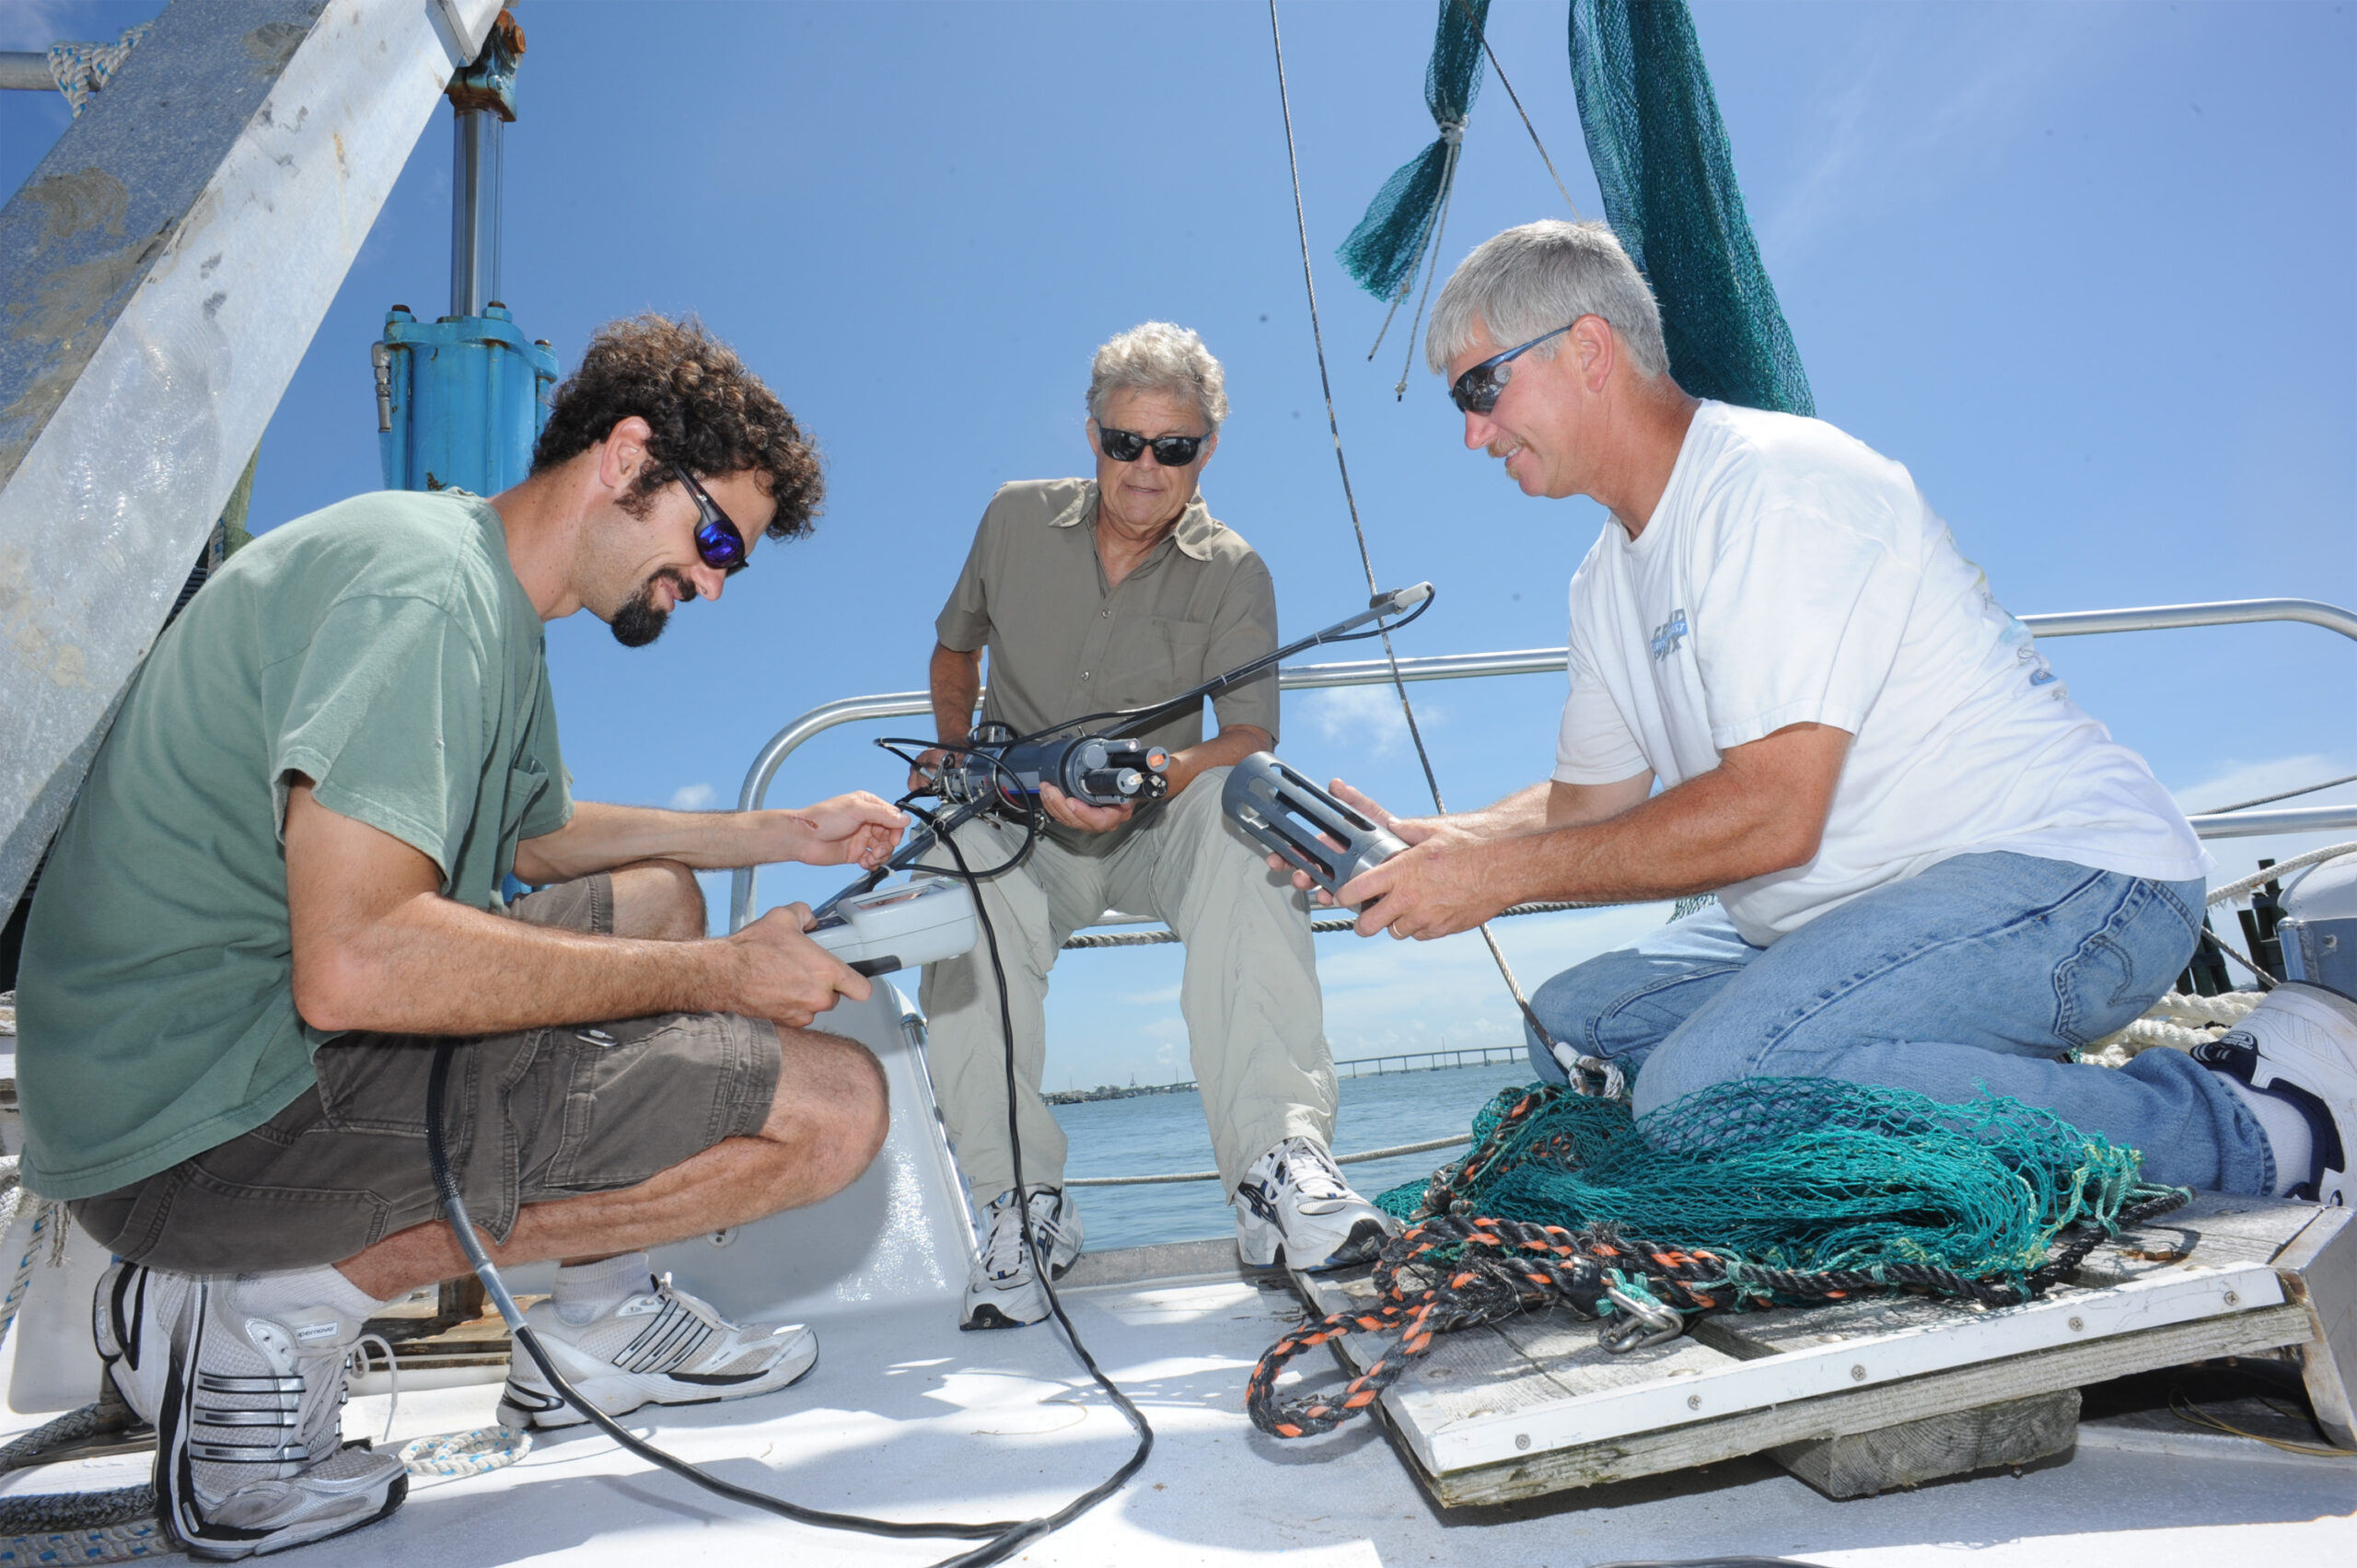 Scientist Hans Pearl (center) and colleagues on a FerryMon route to collect vital water quality data from the Neuse River Estuary and Pamlico Sound. Photo courtesy of UNC.